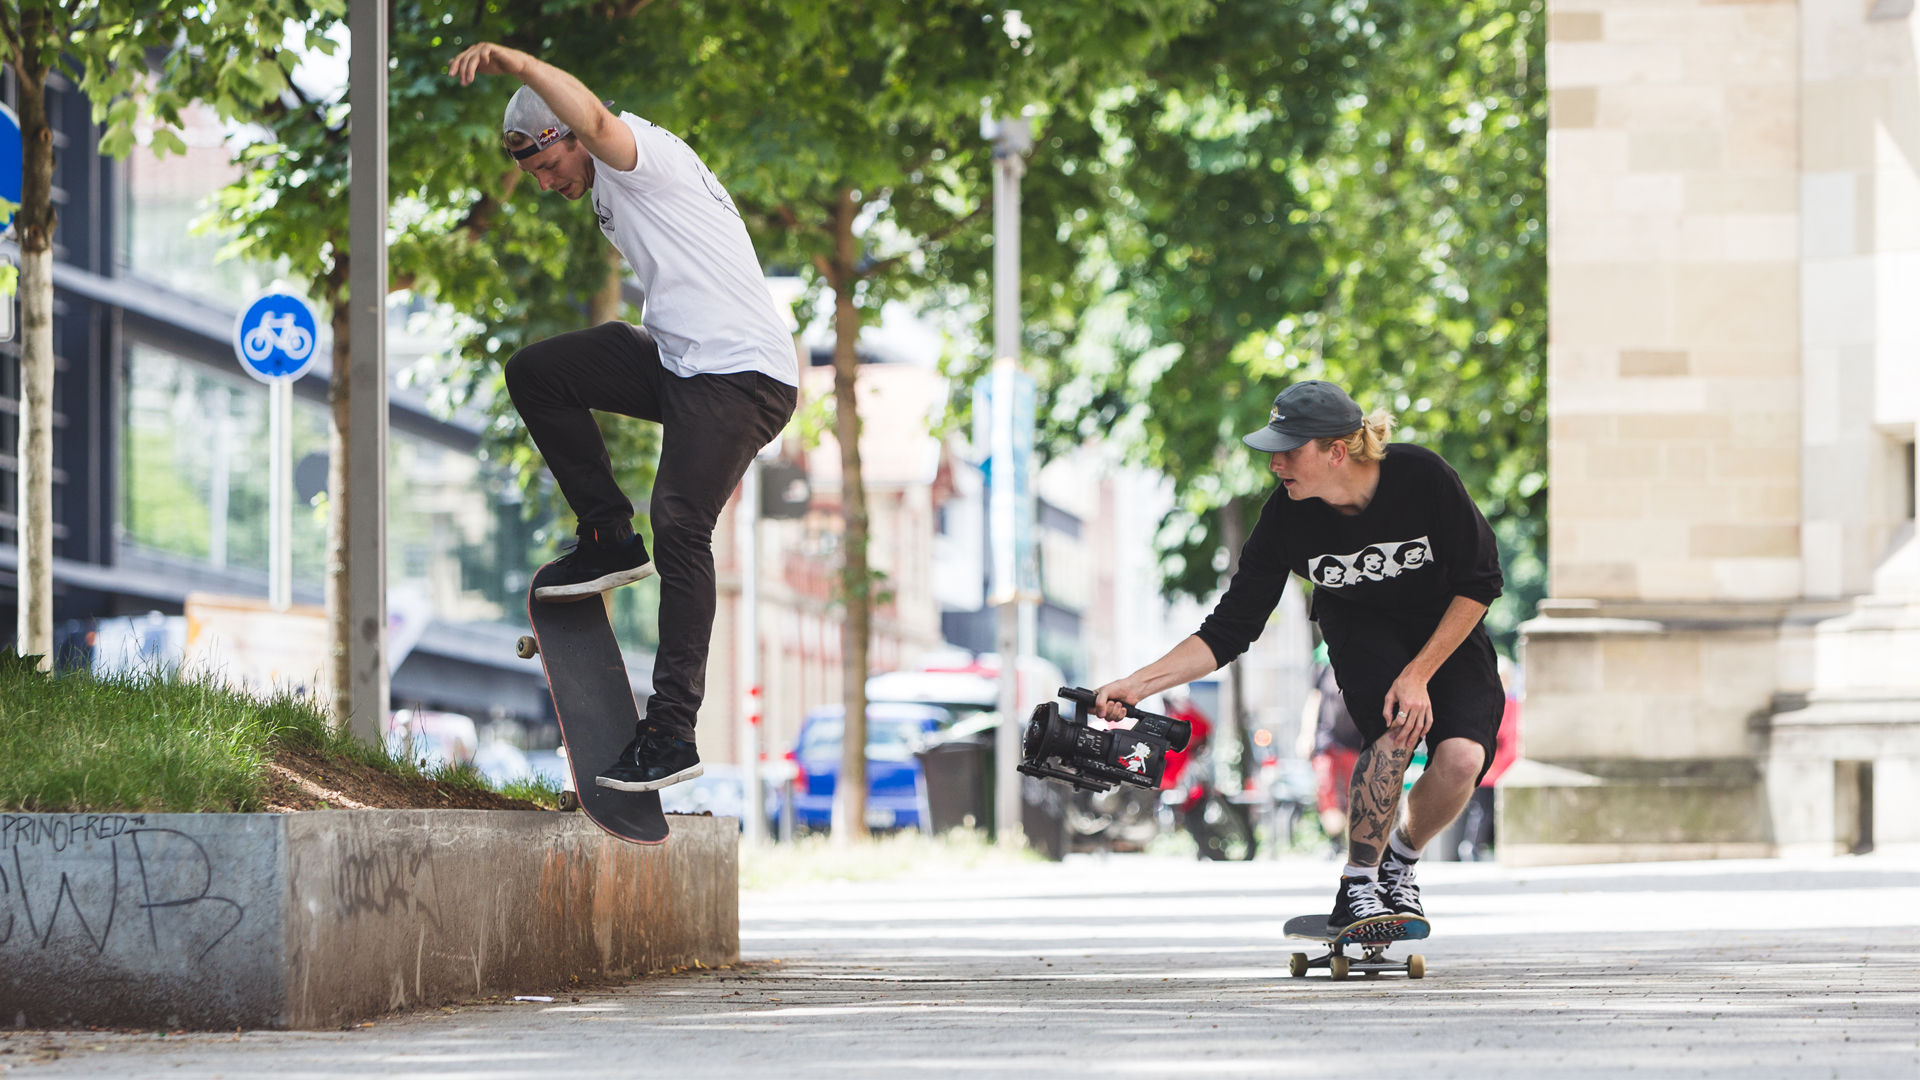 Top 10 Skateboard Full Movies available online for free